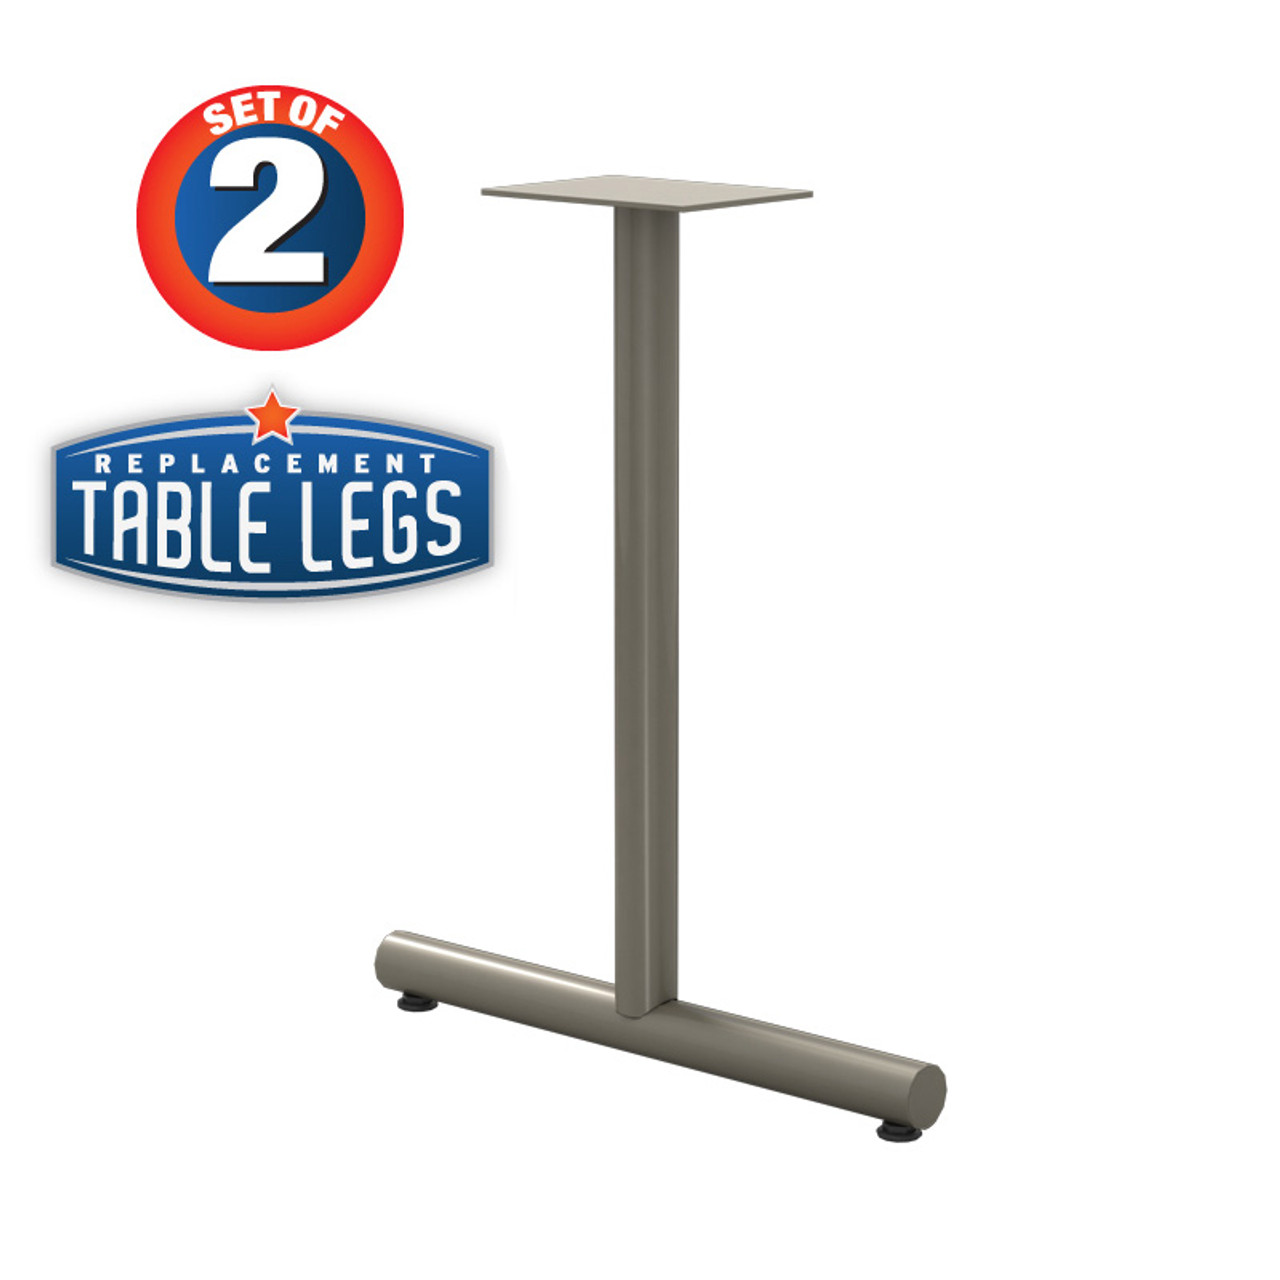 "Tubular T-style Table Base, 27-3/4"" Height, 22"" Base Spread, 2"" diameter Columns with adjustable Levelers. - Replacementtablelegs.com"